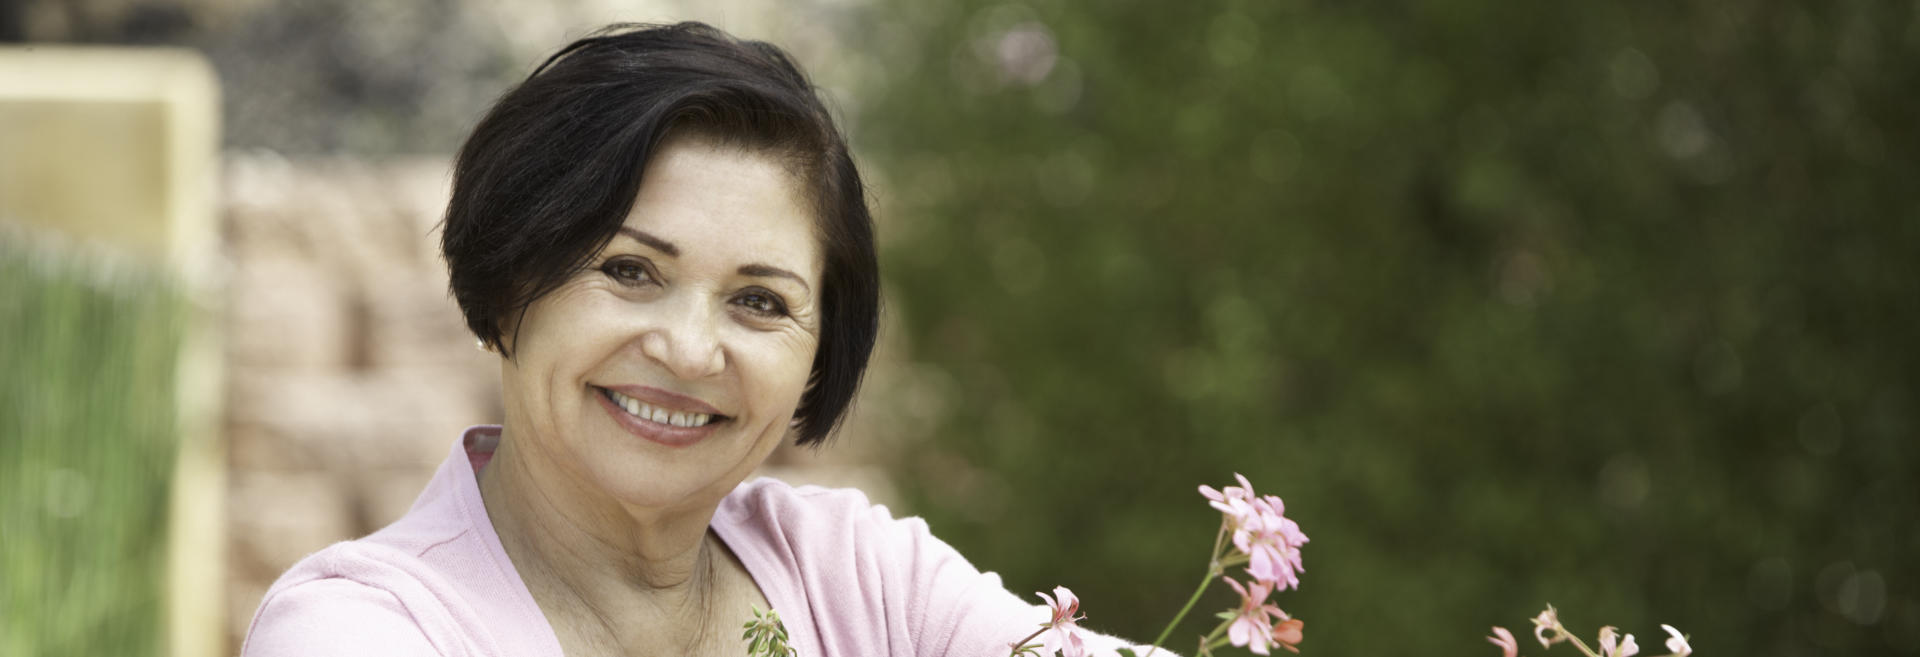 A happy senior woman showing her nice teeth after dental implant restoration in her smile.